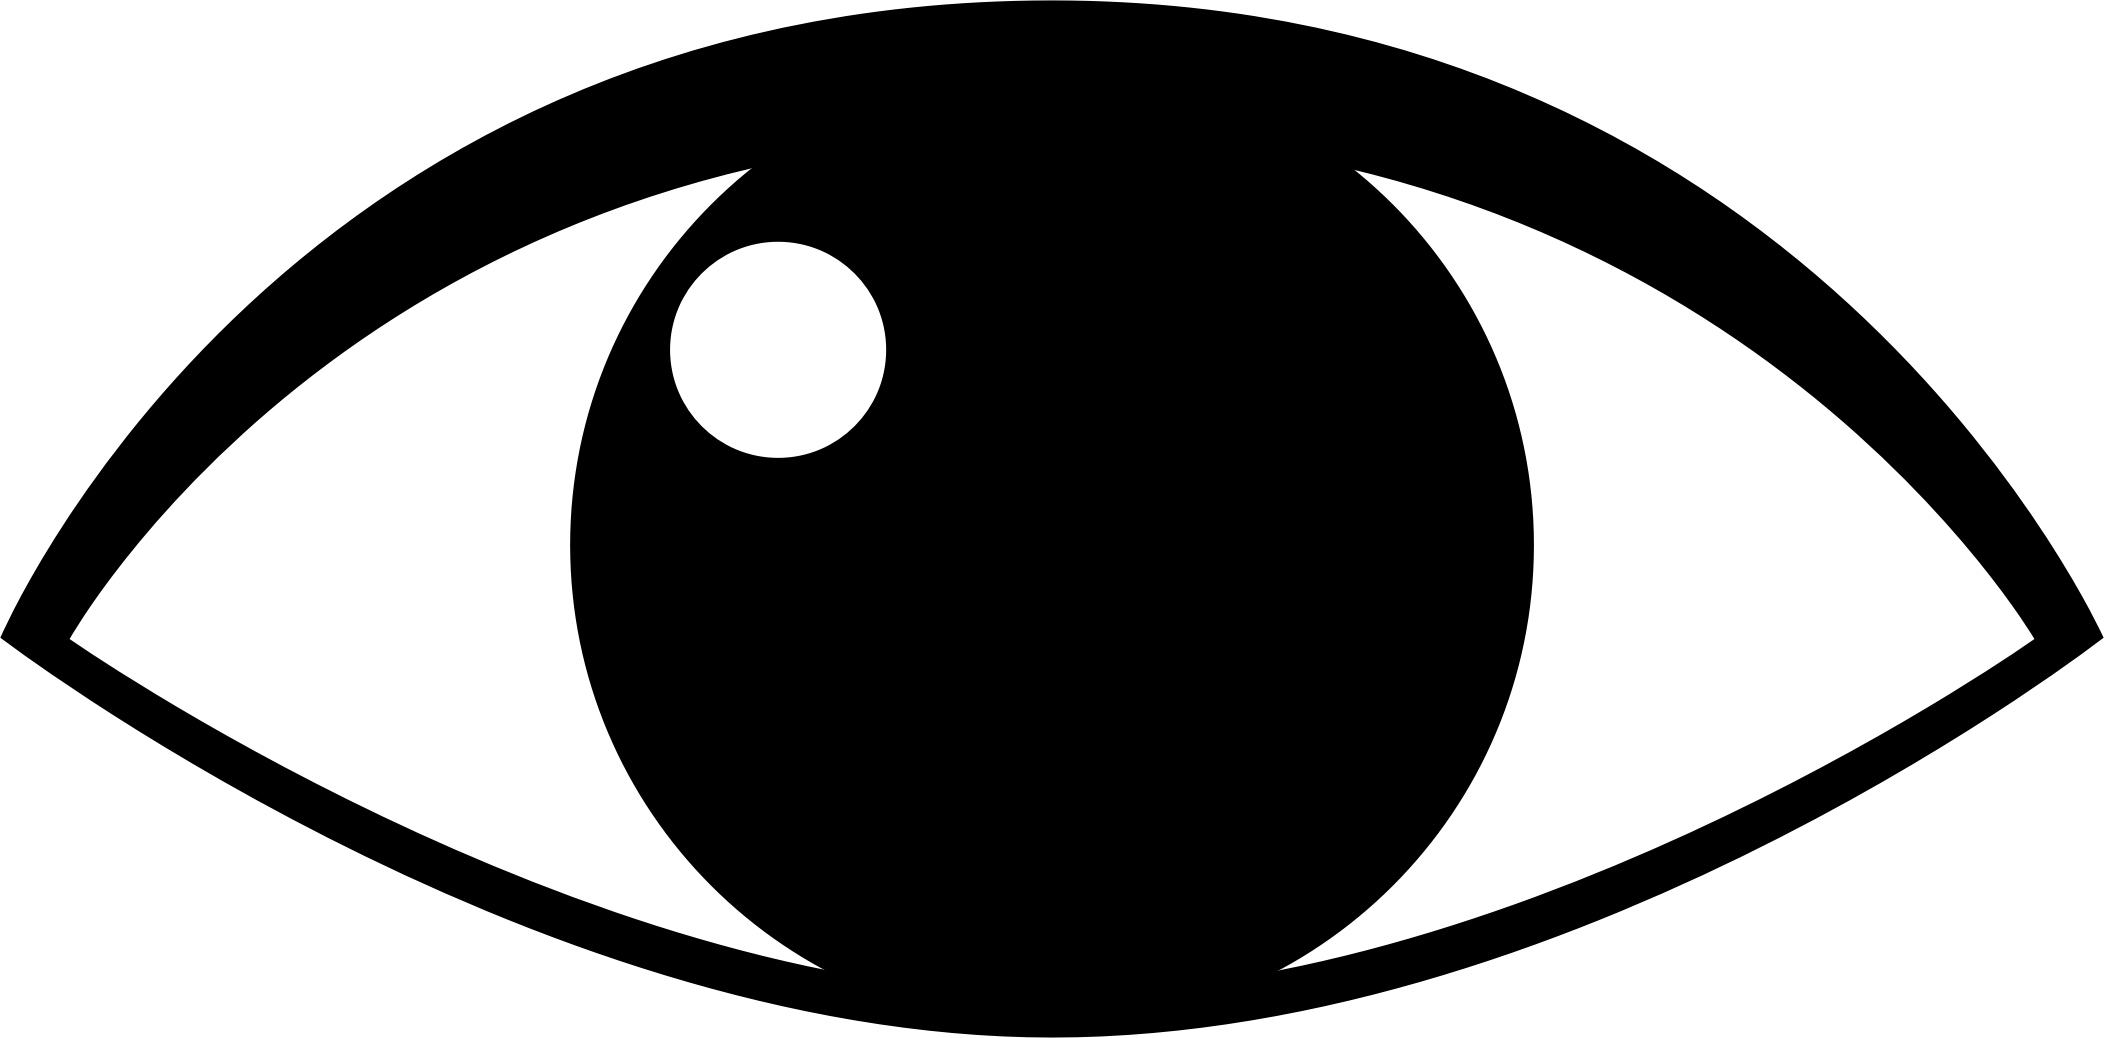 Eyeball clipart png. Collection of eye